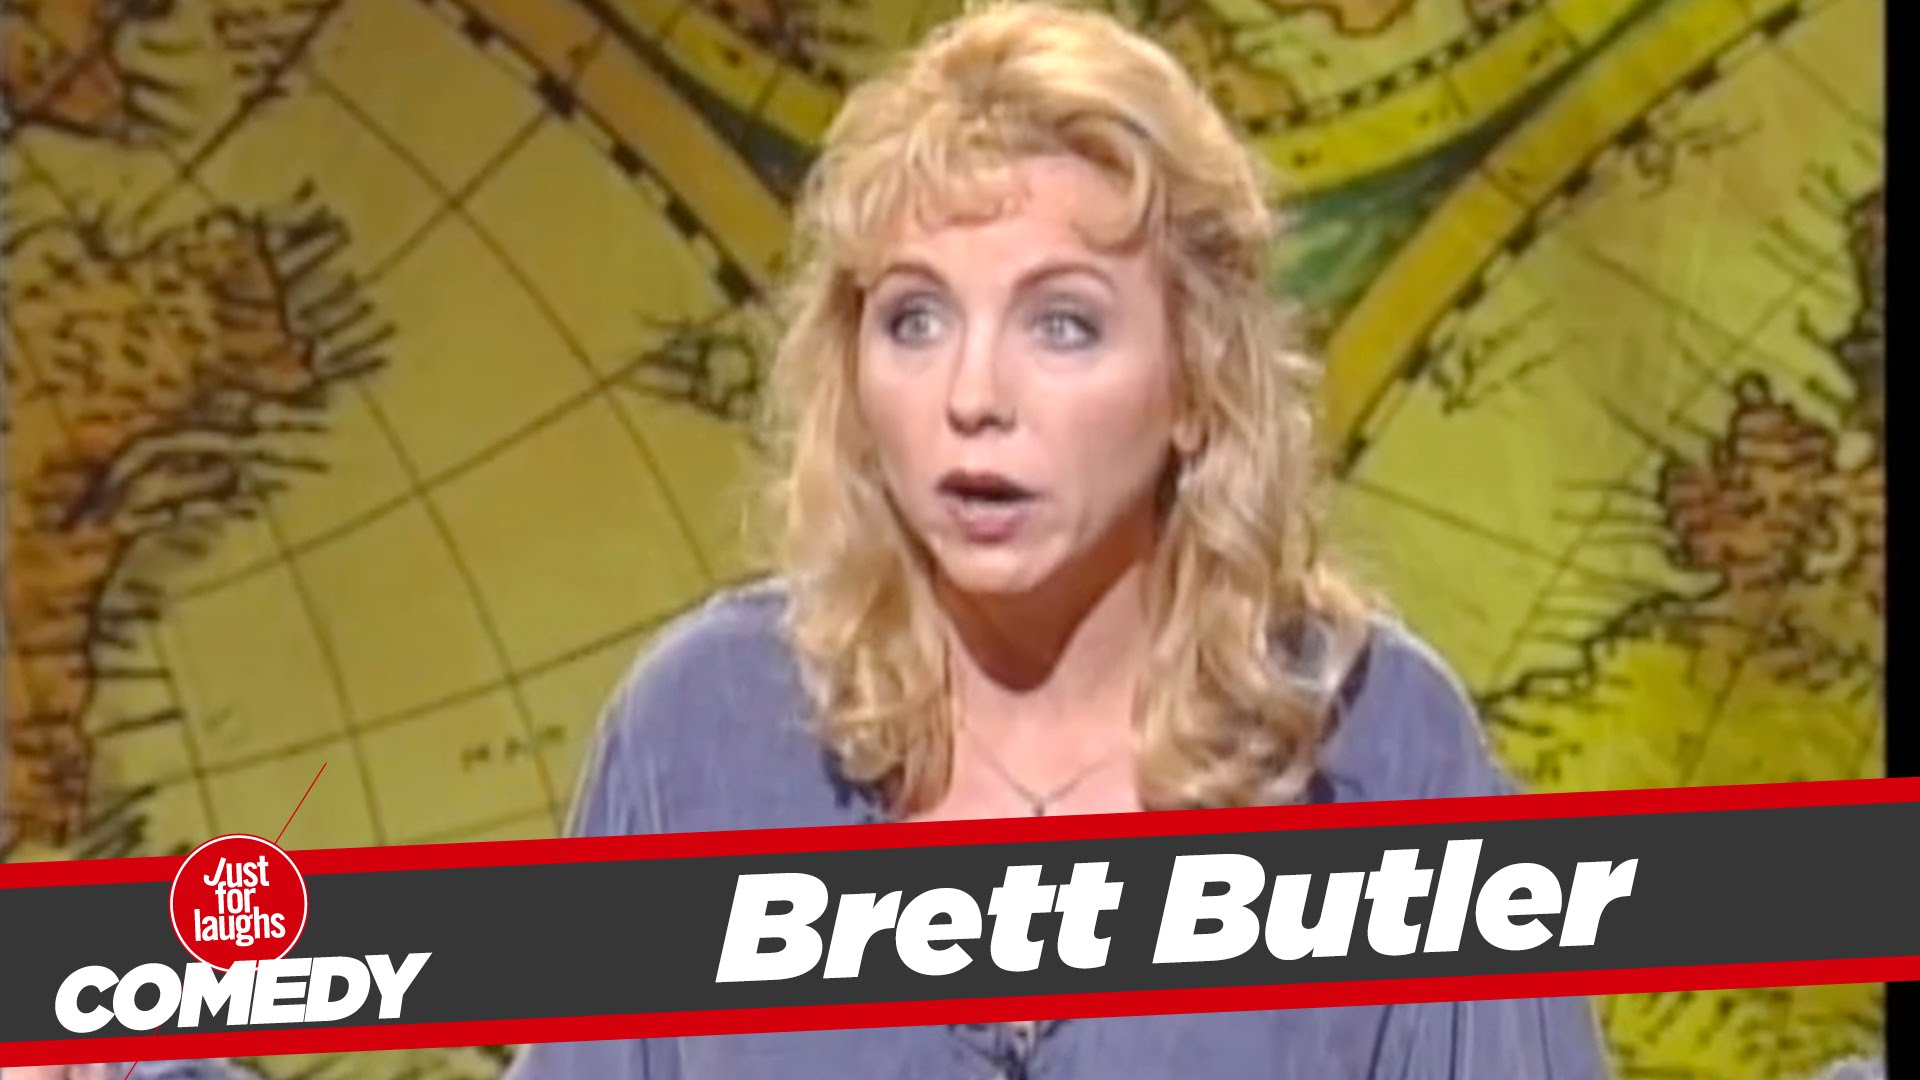 pictures Brett Butler (actress)